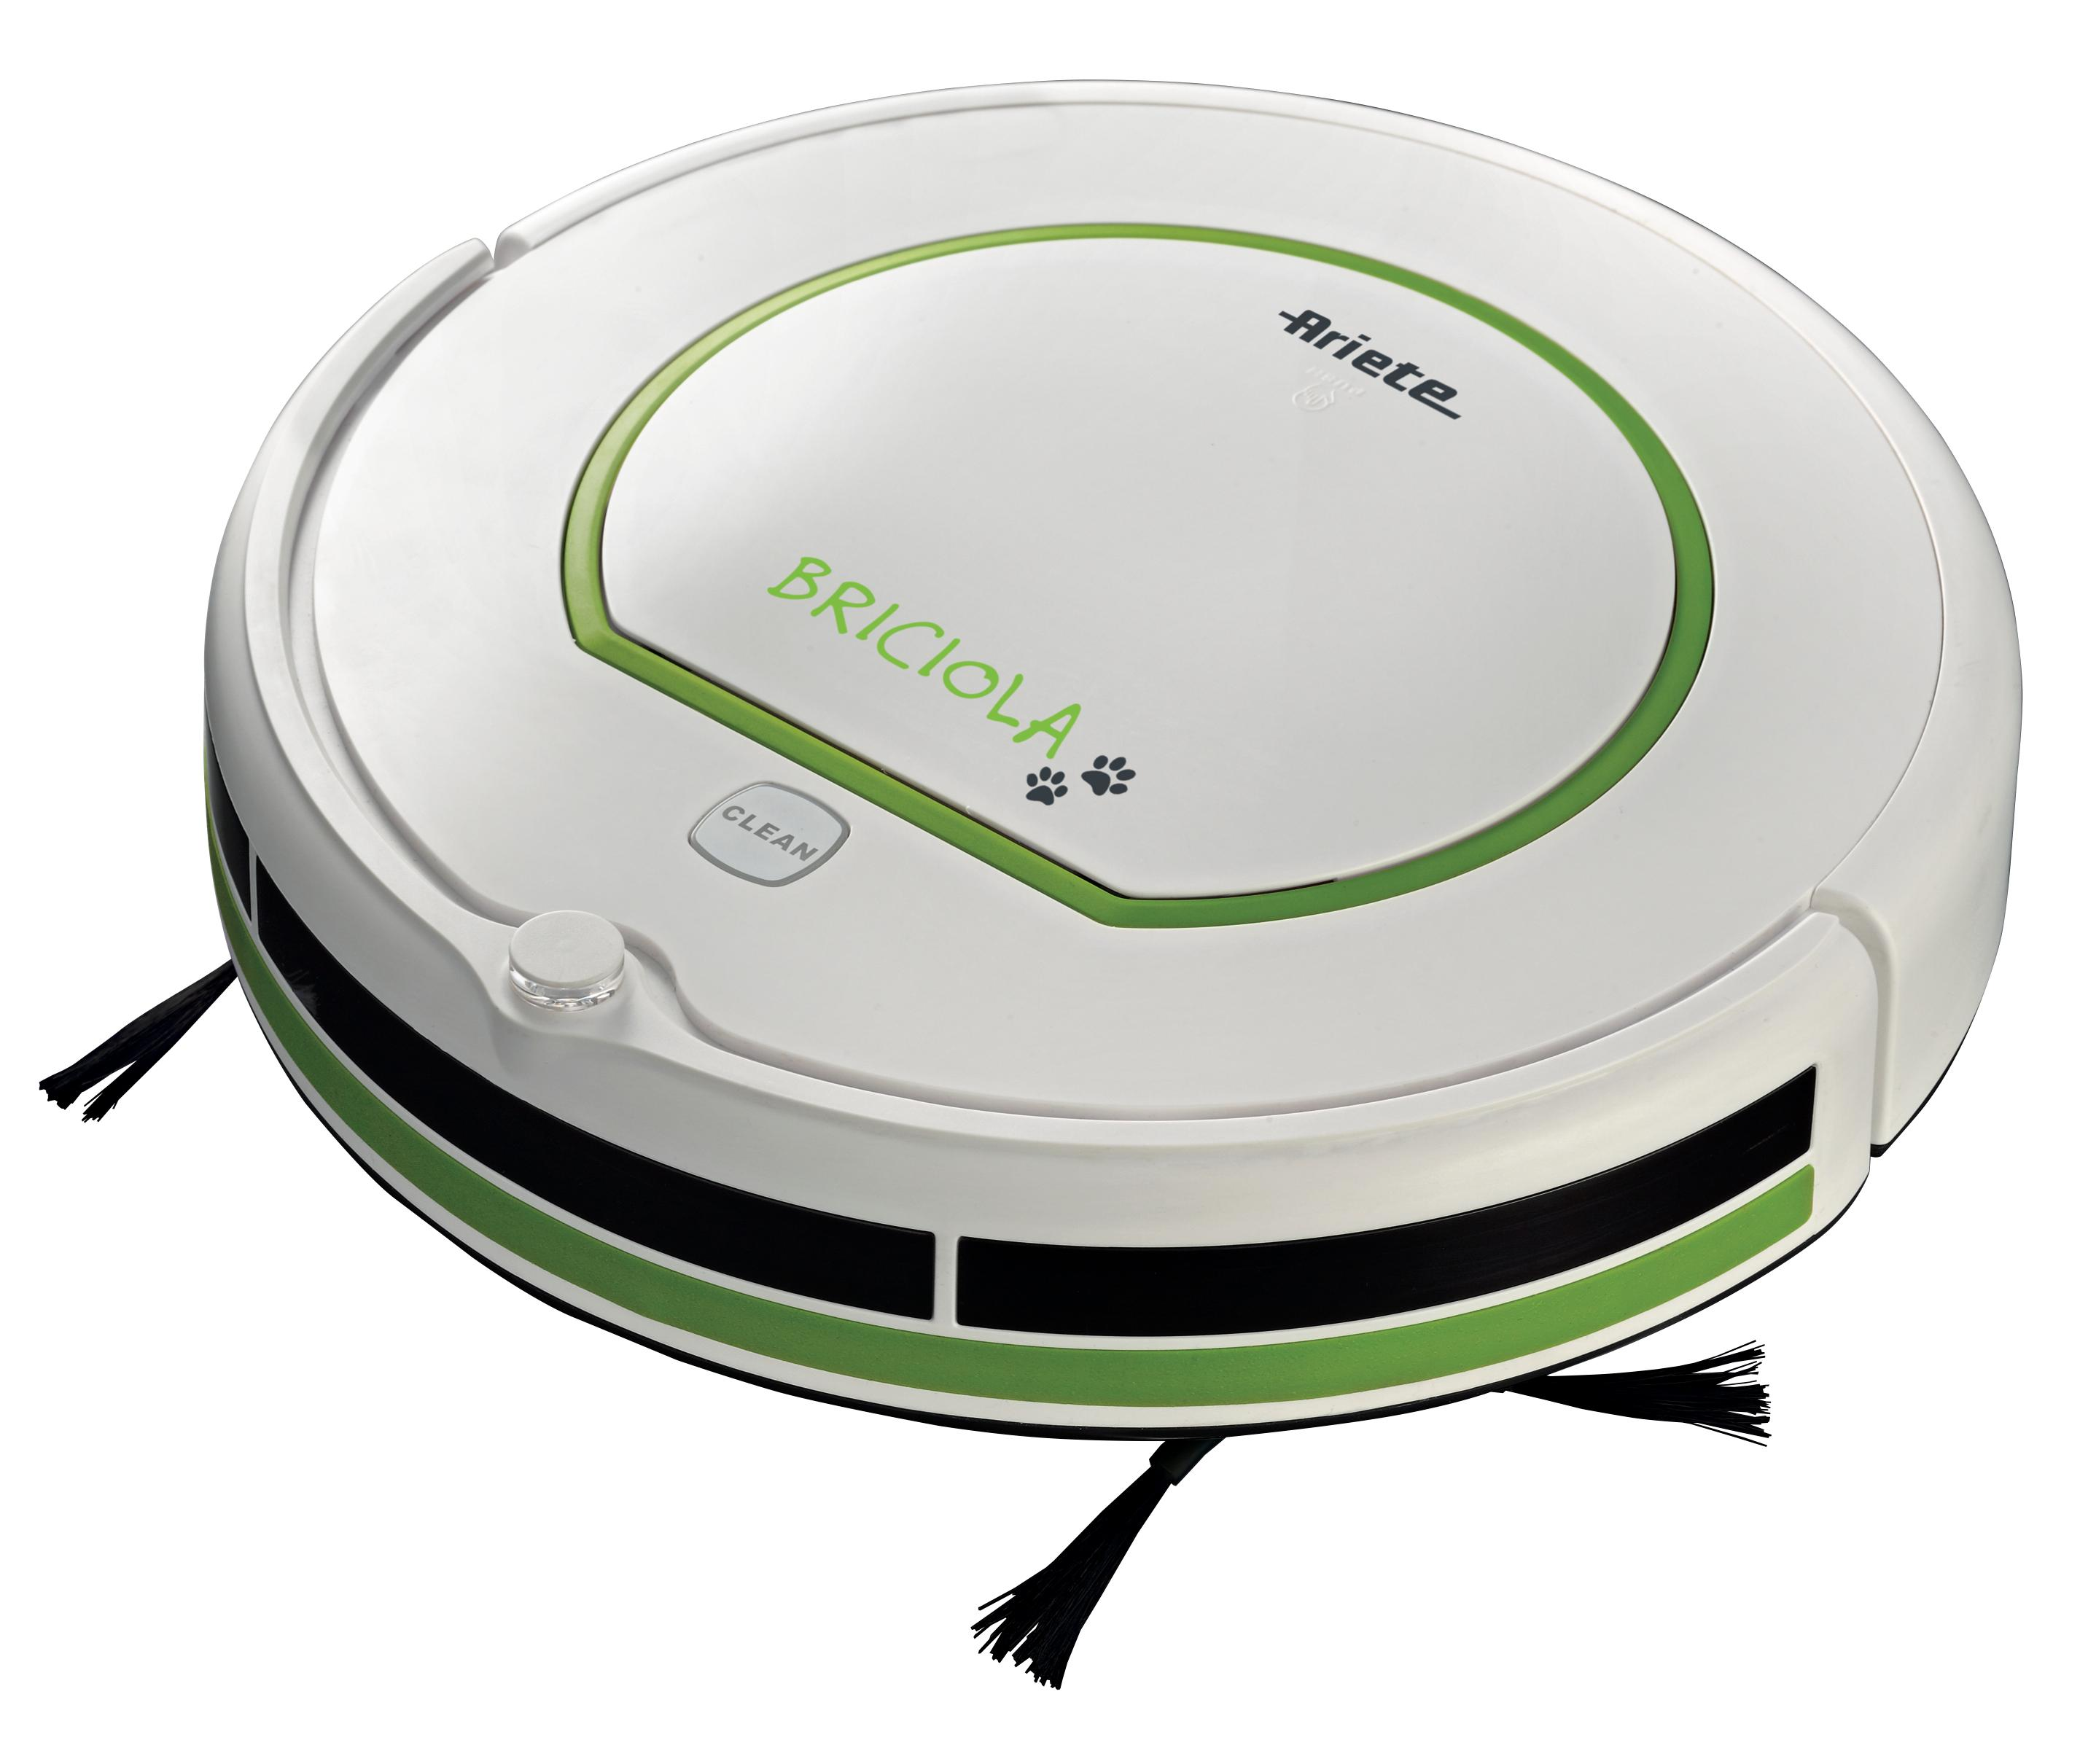 Ariete briciola robotic vacuum cleaner 25 watt green for Ariete cordless sweeper